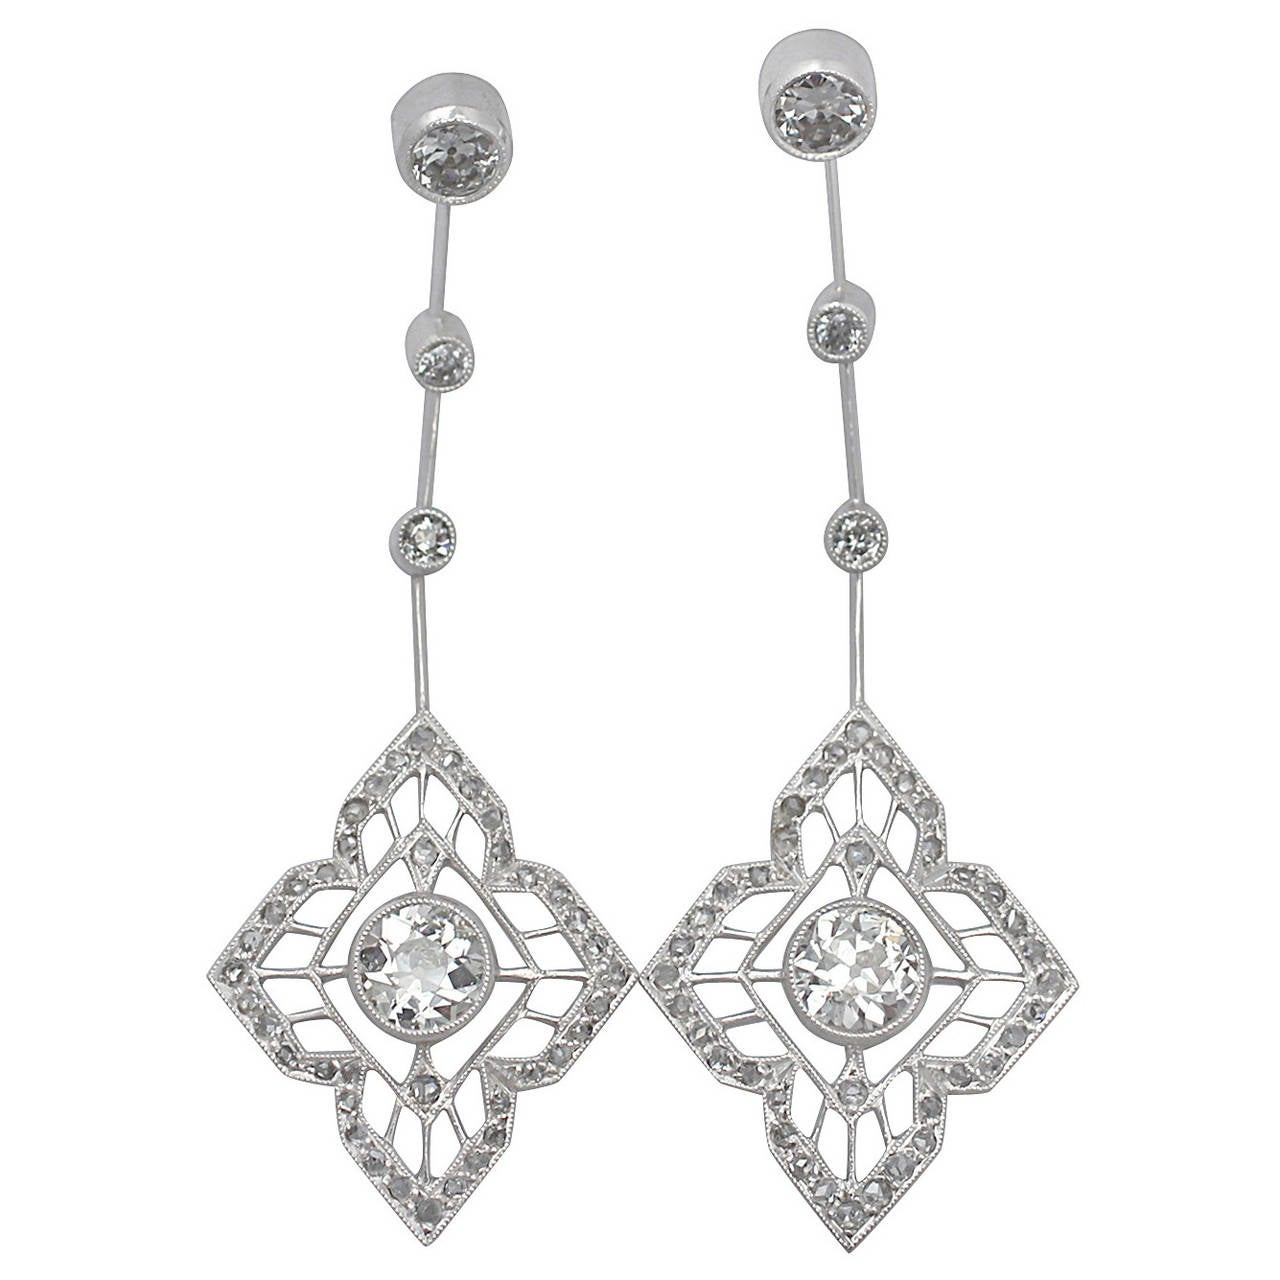 ad studios radenbrea product art earrings deco